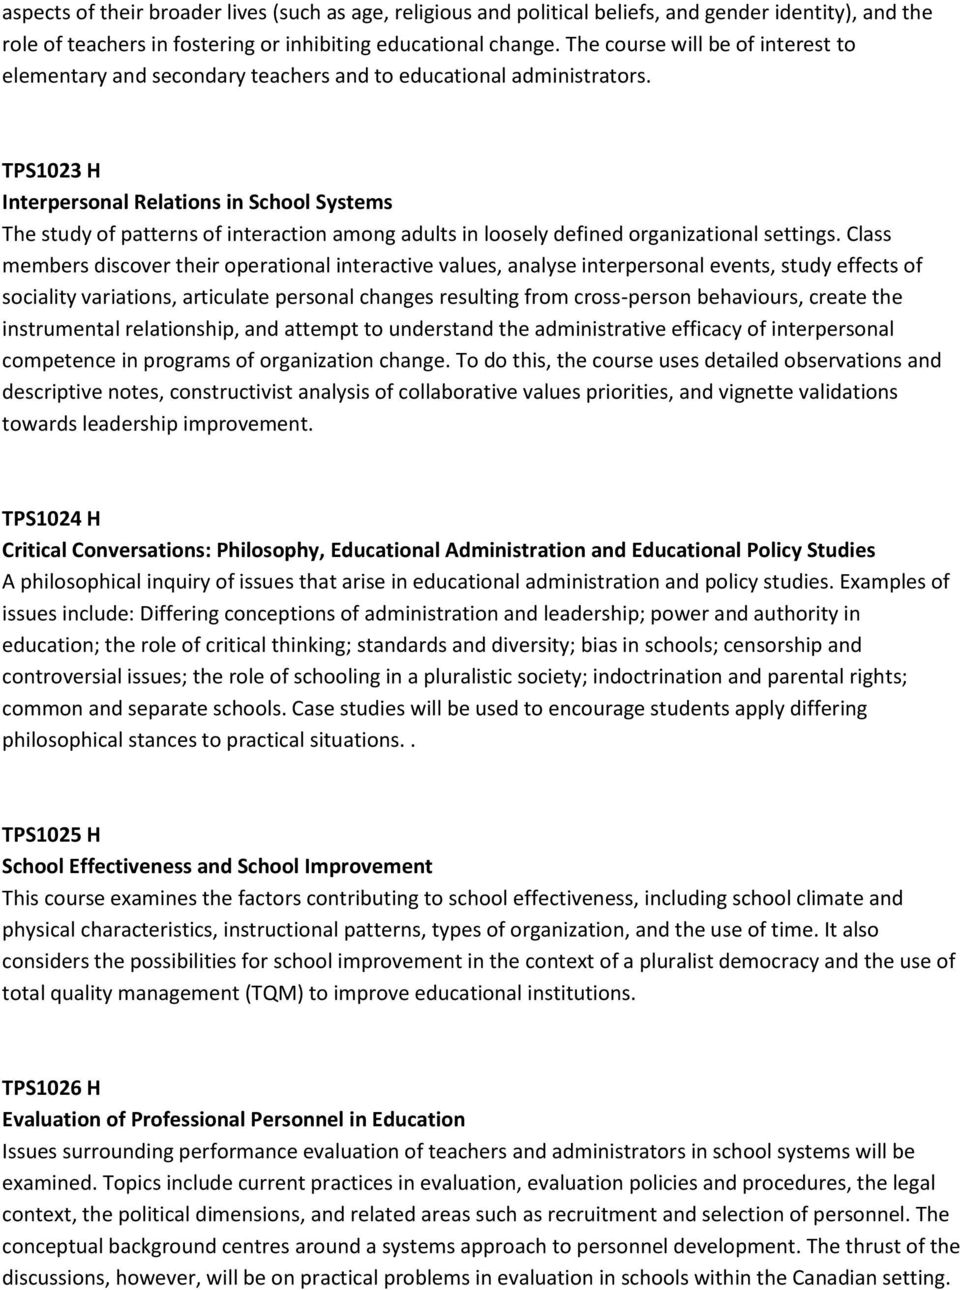 TPS1023 H Interpersonal Relations in School Systems The study of patterns of interaction among adults in loosely defined organizational settings.